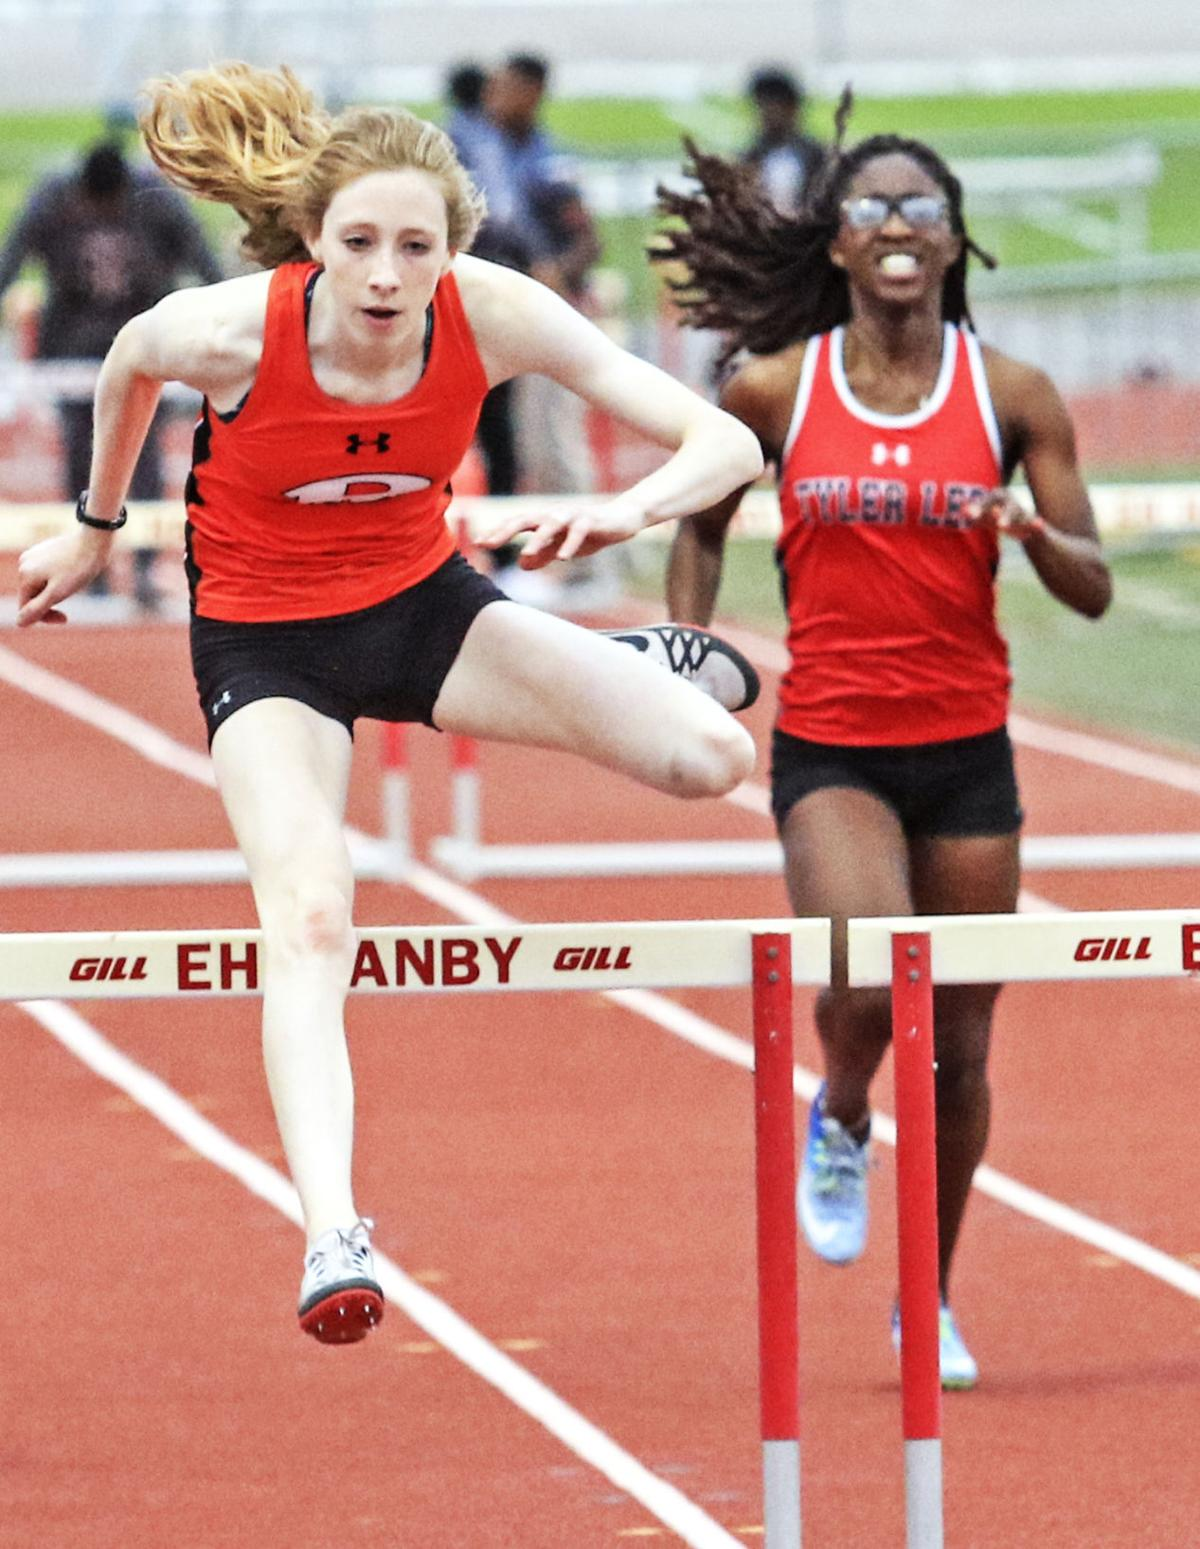 Rockwall girls take district track title | Sports ...